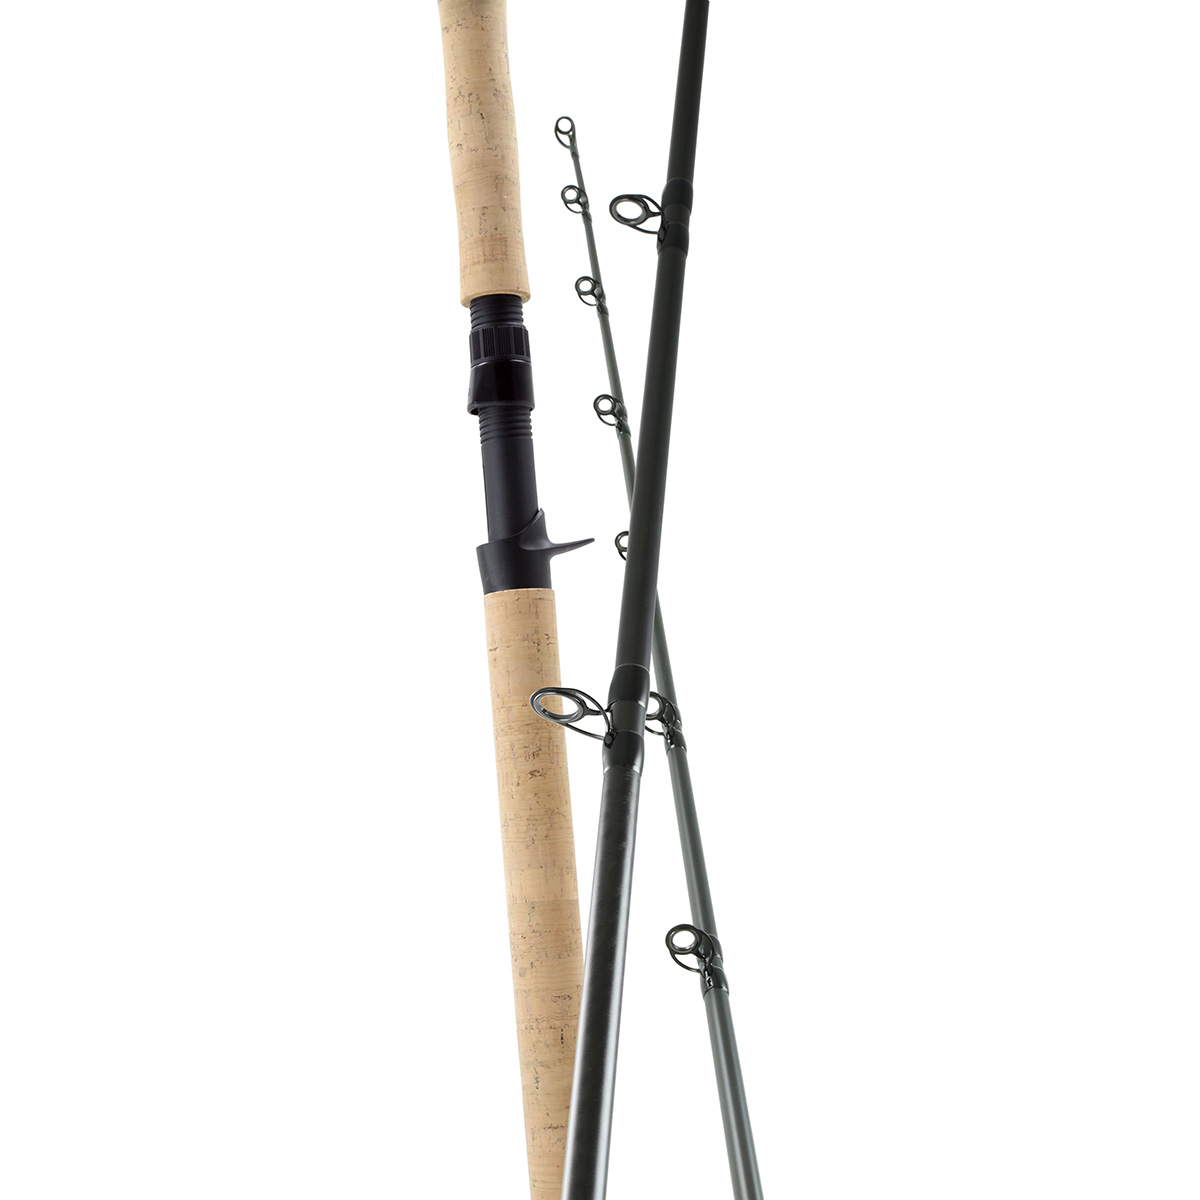 Fishing rods and reels evx b series musky rod for Fishing rod reel